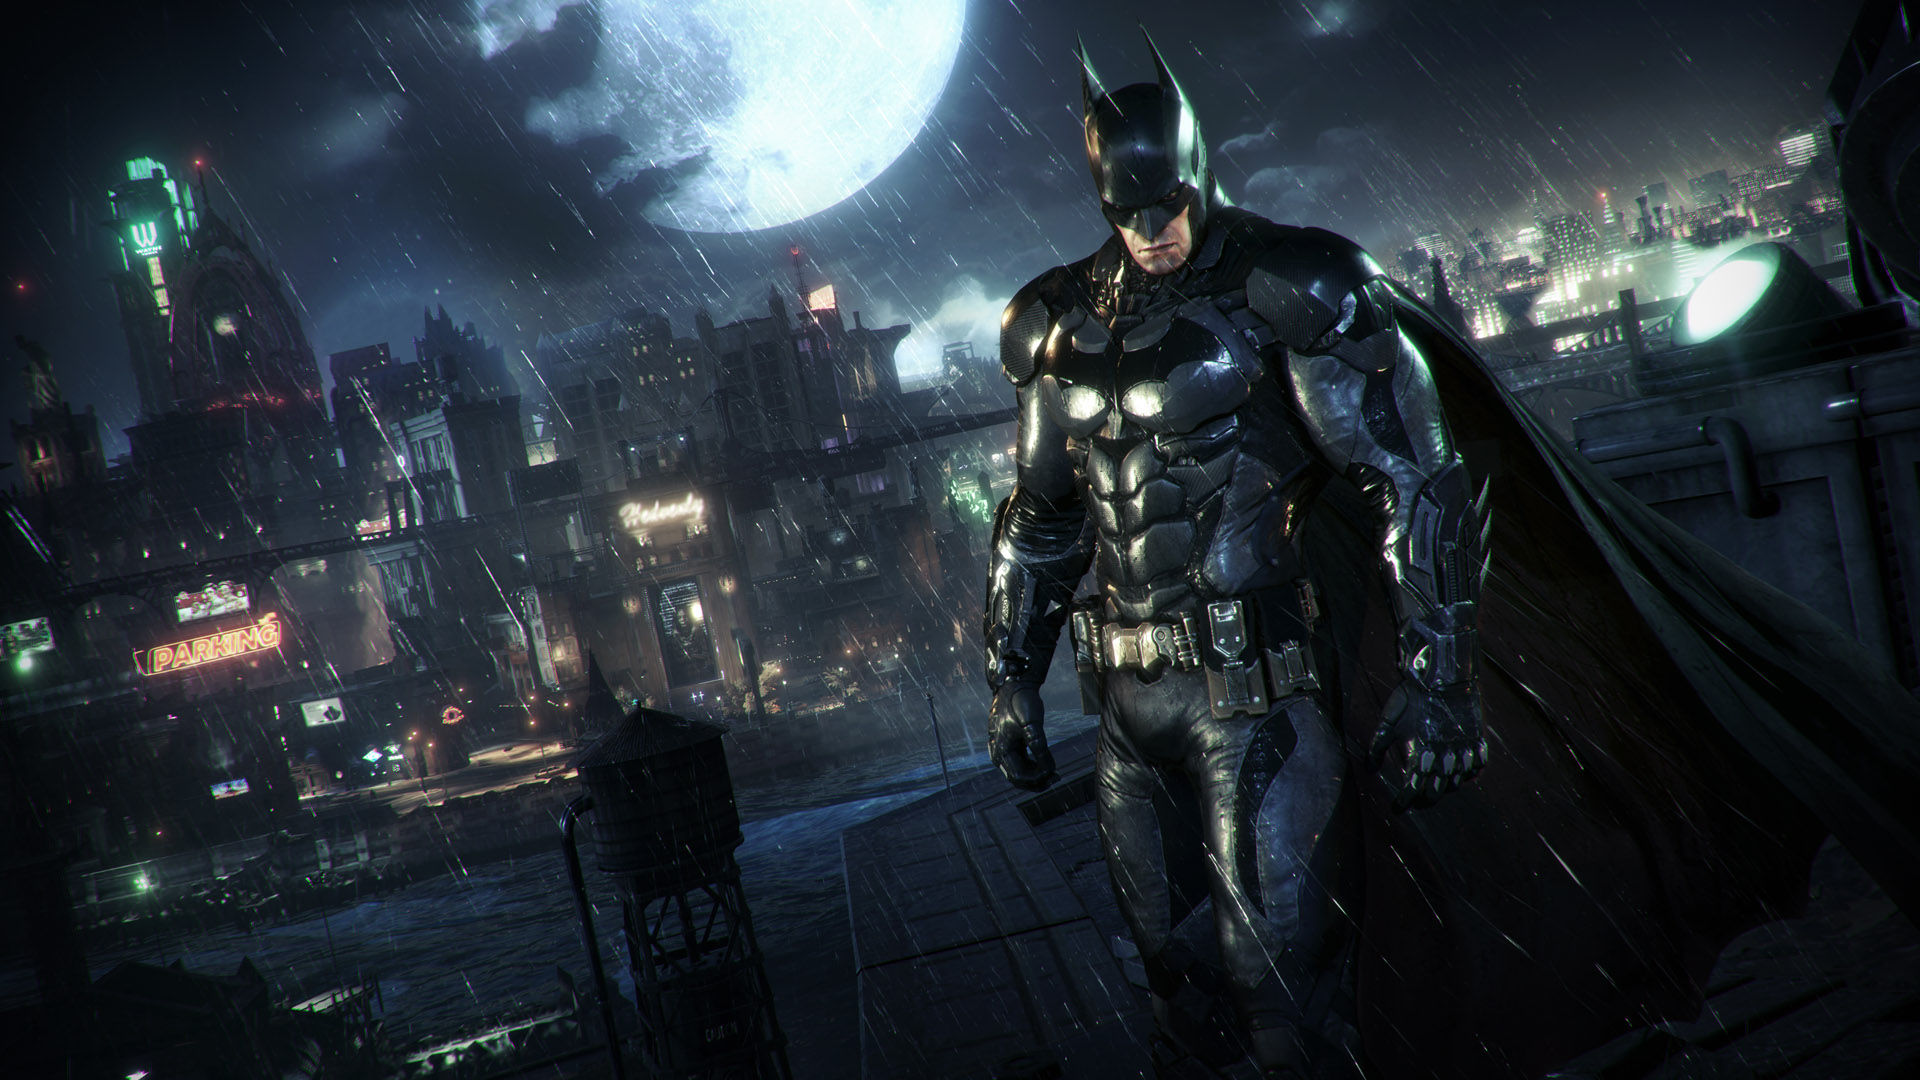 Batman Arkham Knight set to release for Playstation4, Xbox One and PC